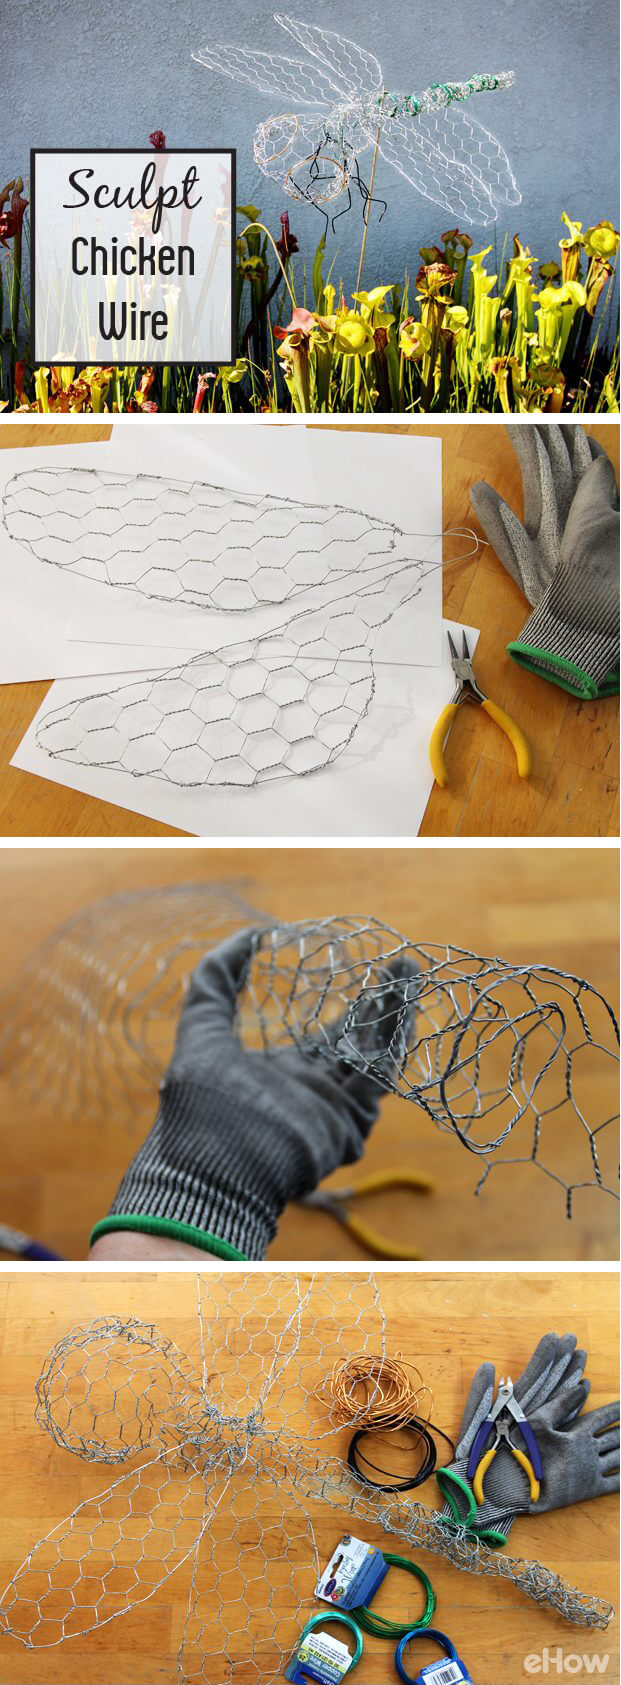 Make a Dragonfly from Chicken Wire.